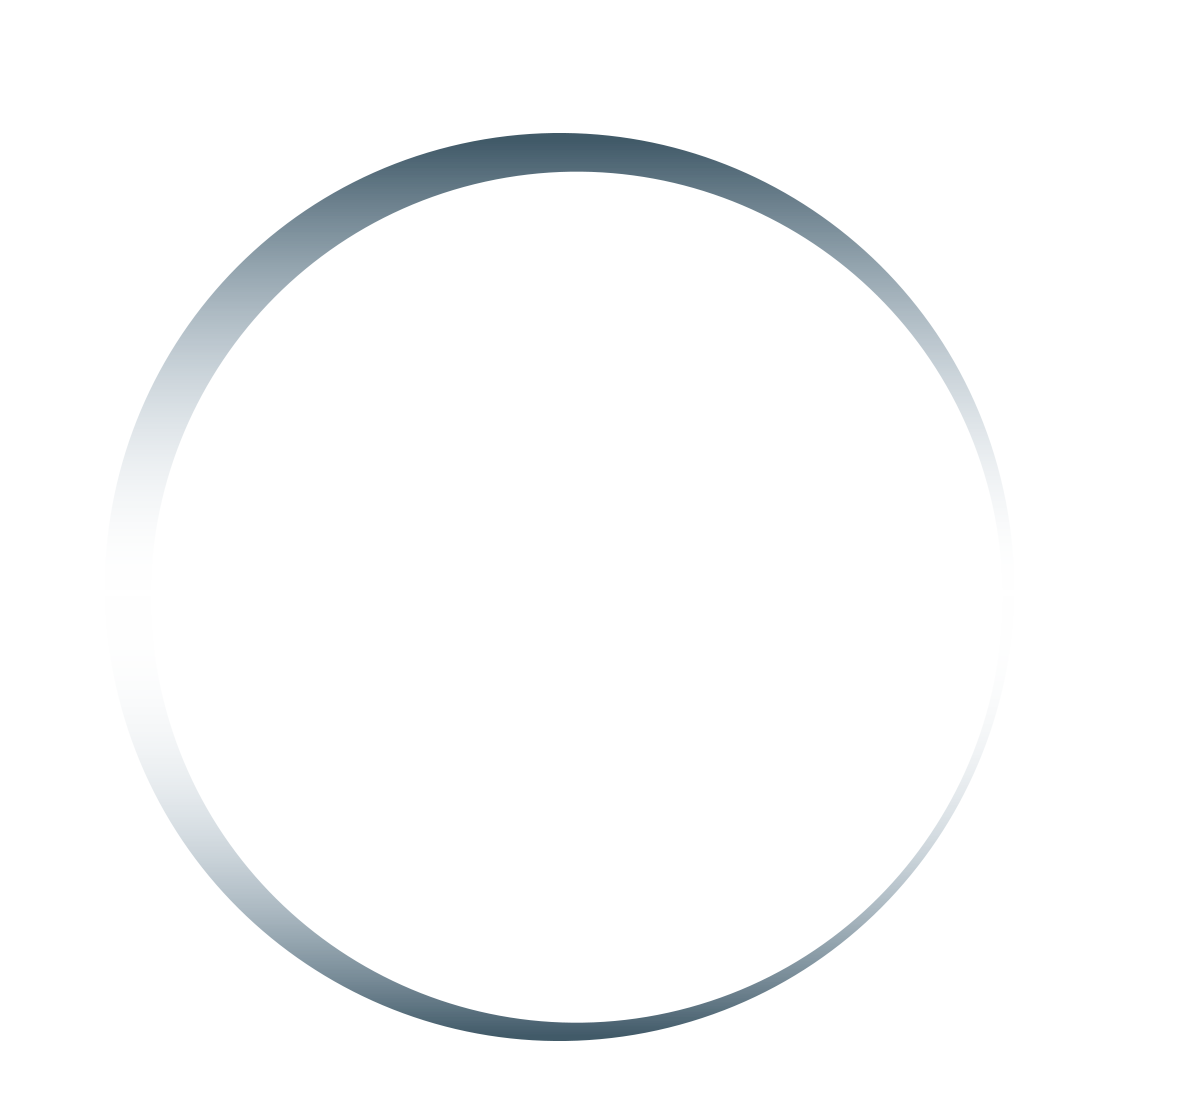 Png circle effects. Cause effect strategy and